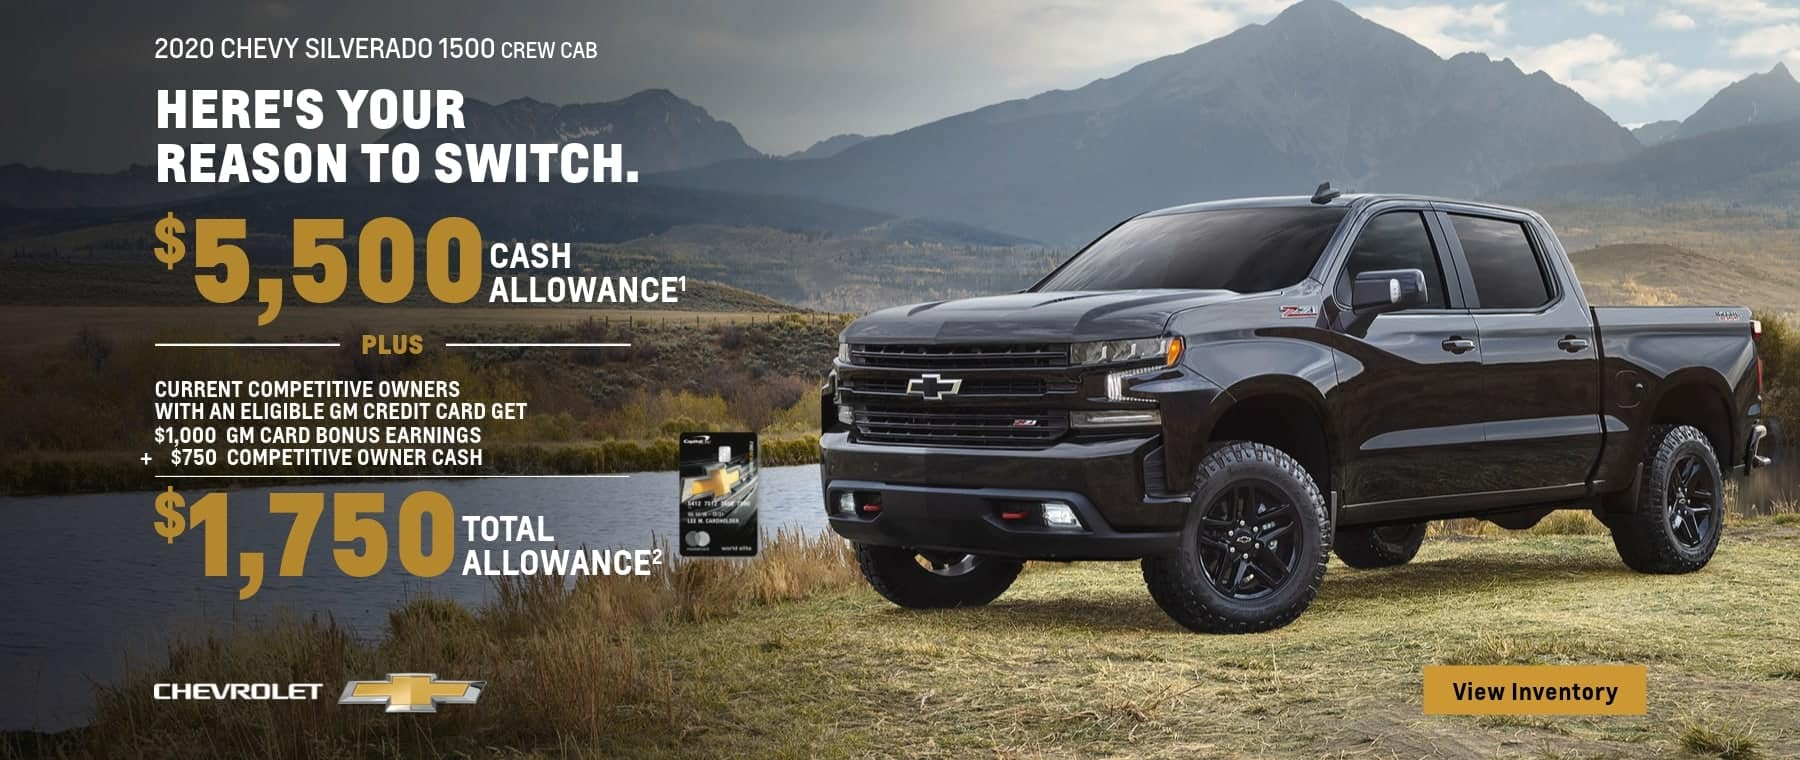 2020 Chevy Silverado 1500 Crew Cab $5,500 cash allowance plus current competitive owners with an Eligible GM Credit card get $1,000 GM Card bonus earnings plus $750 Competitive owner Cash. that's $1,750 Total Allowance.